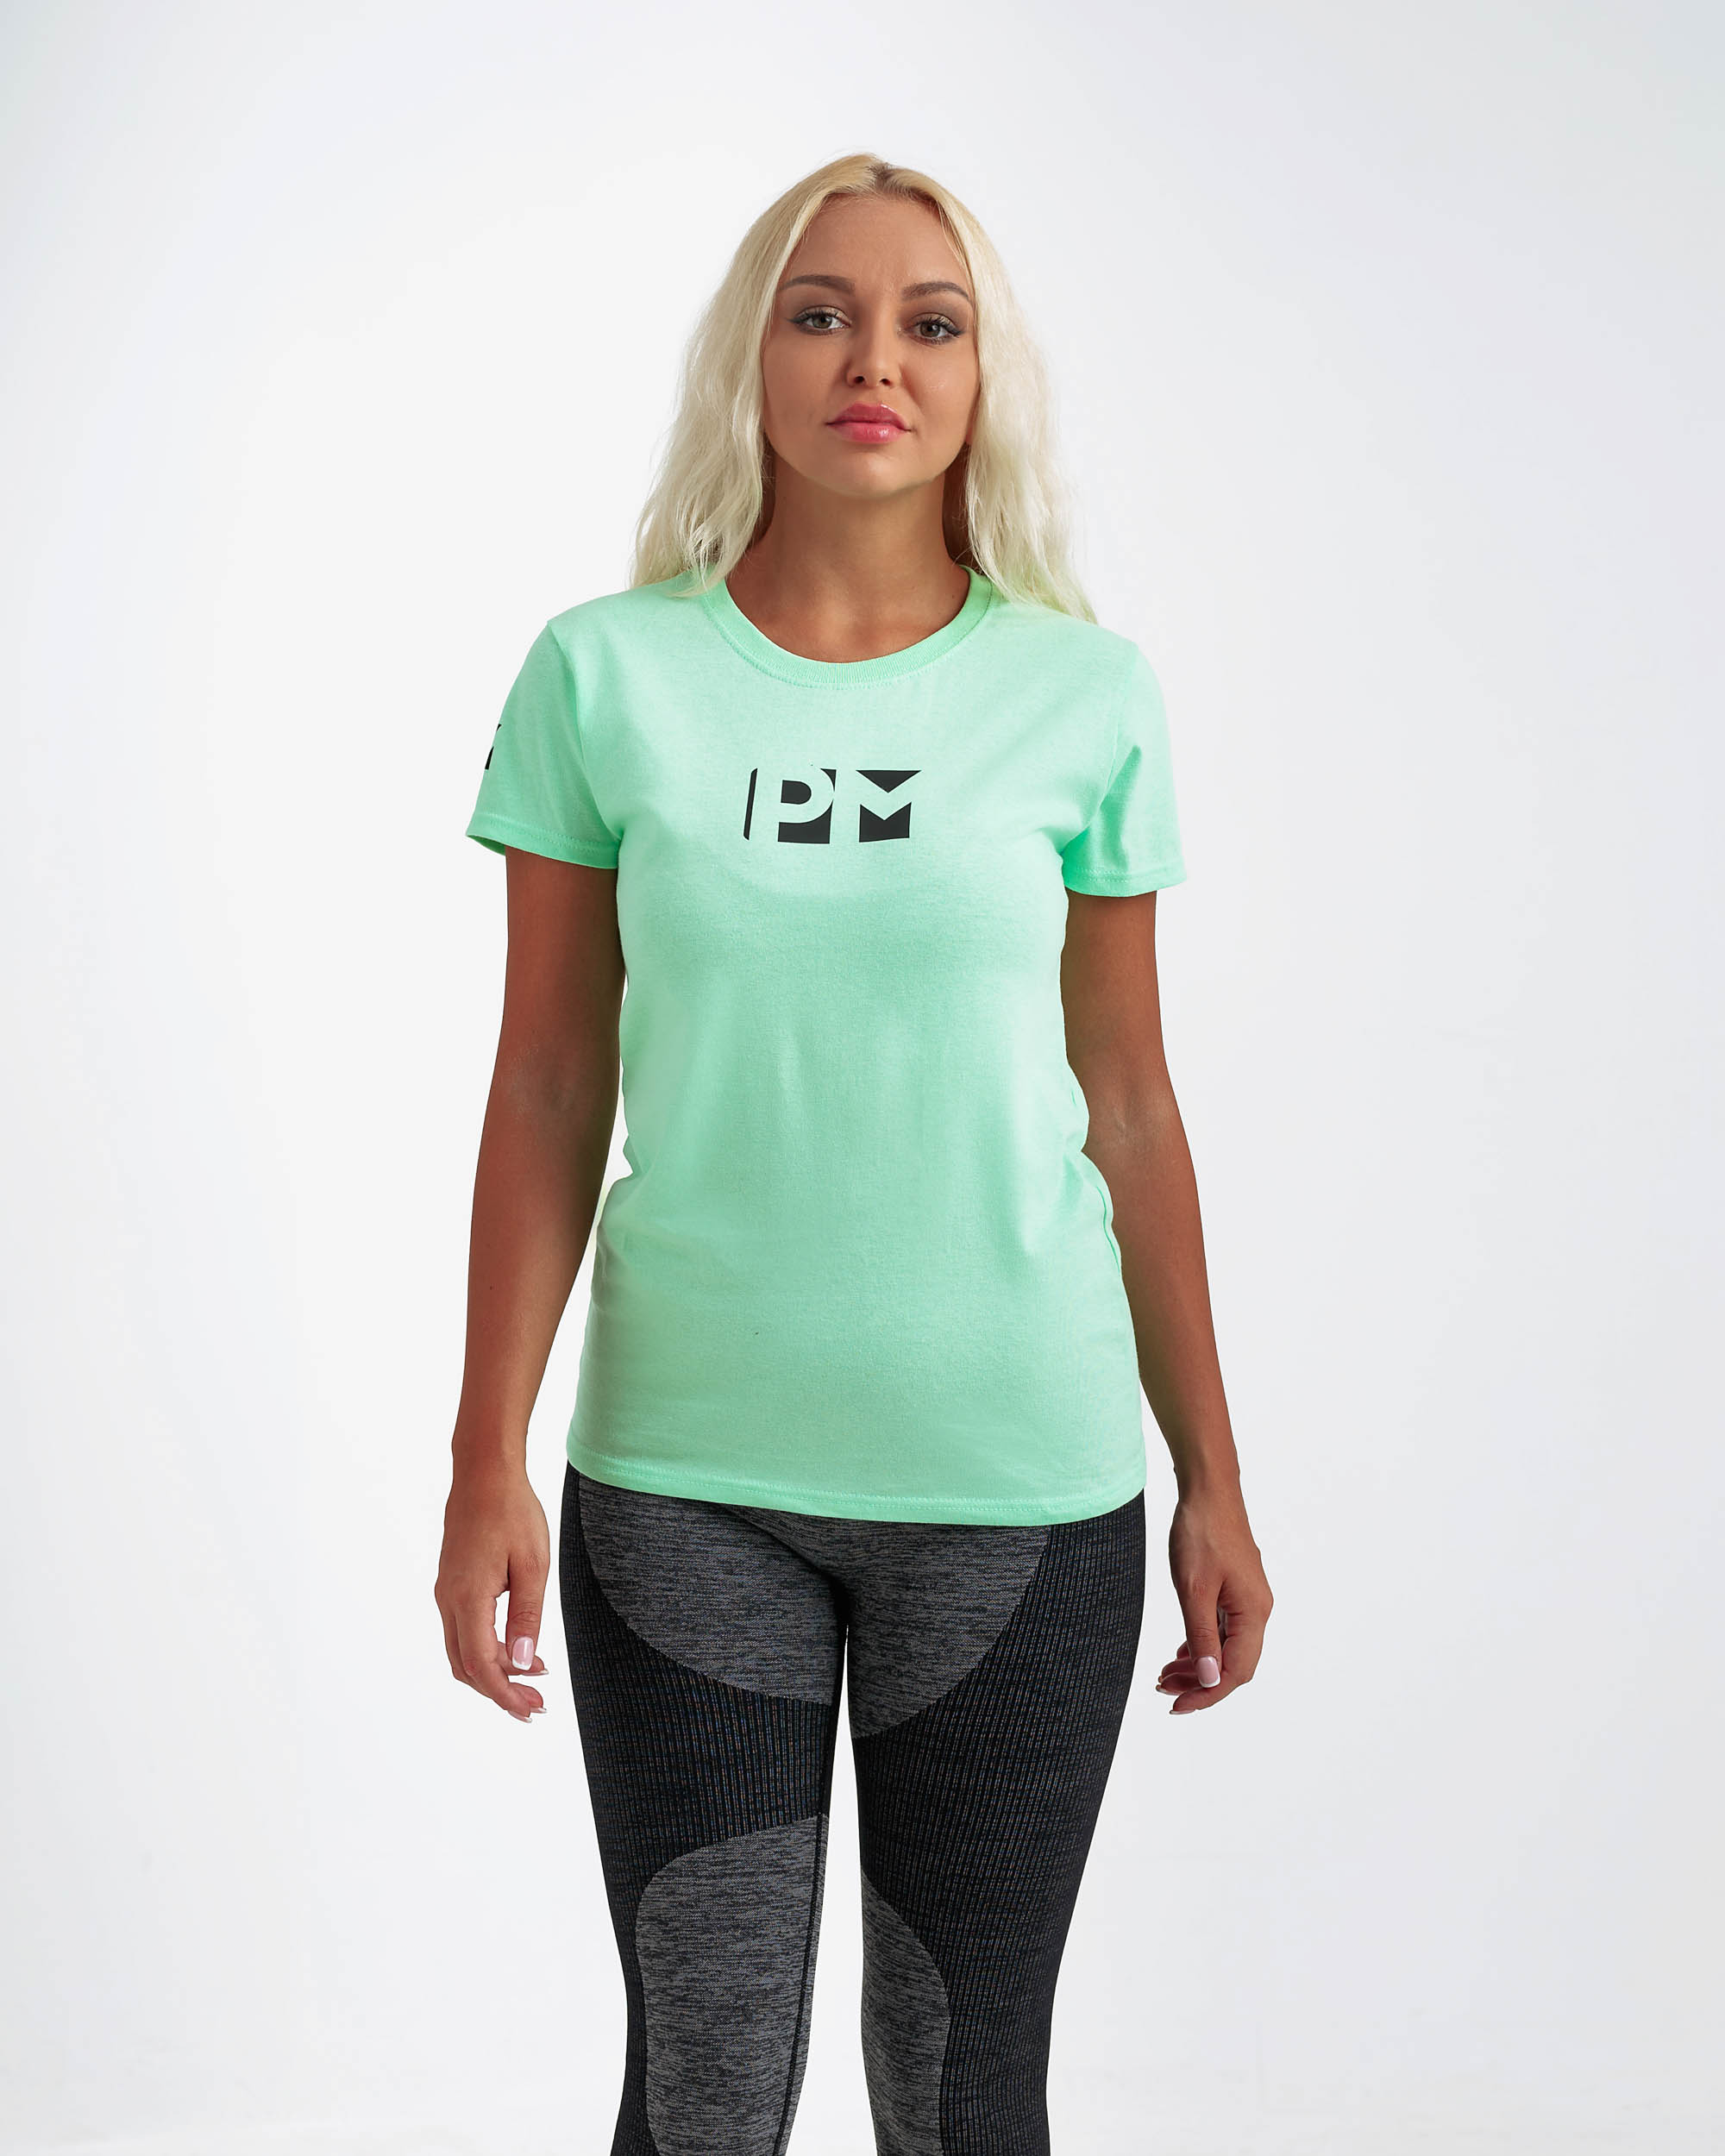 CLASSIC GRIND TO CONQUER TEE MINT GREEN